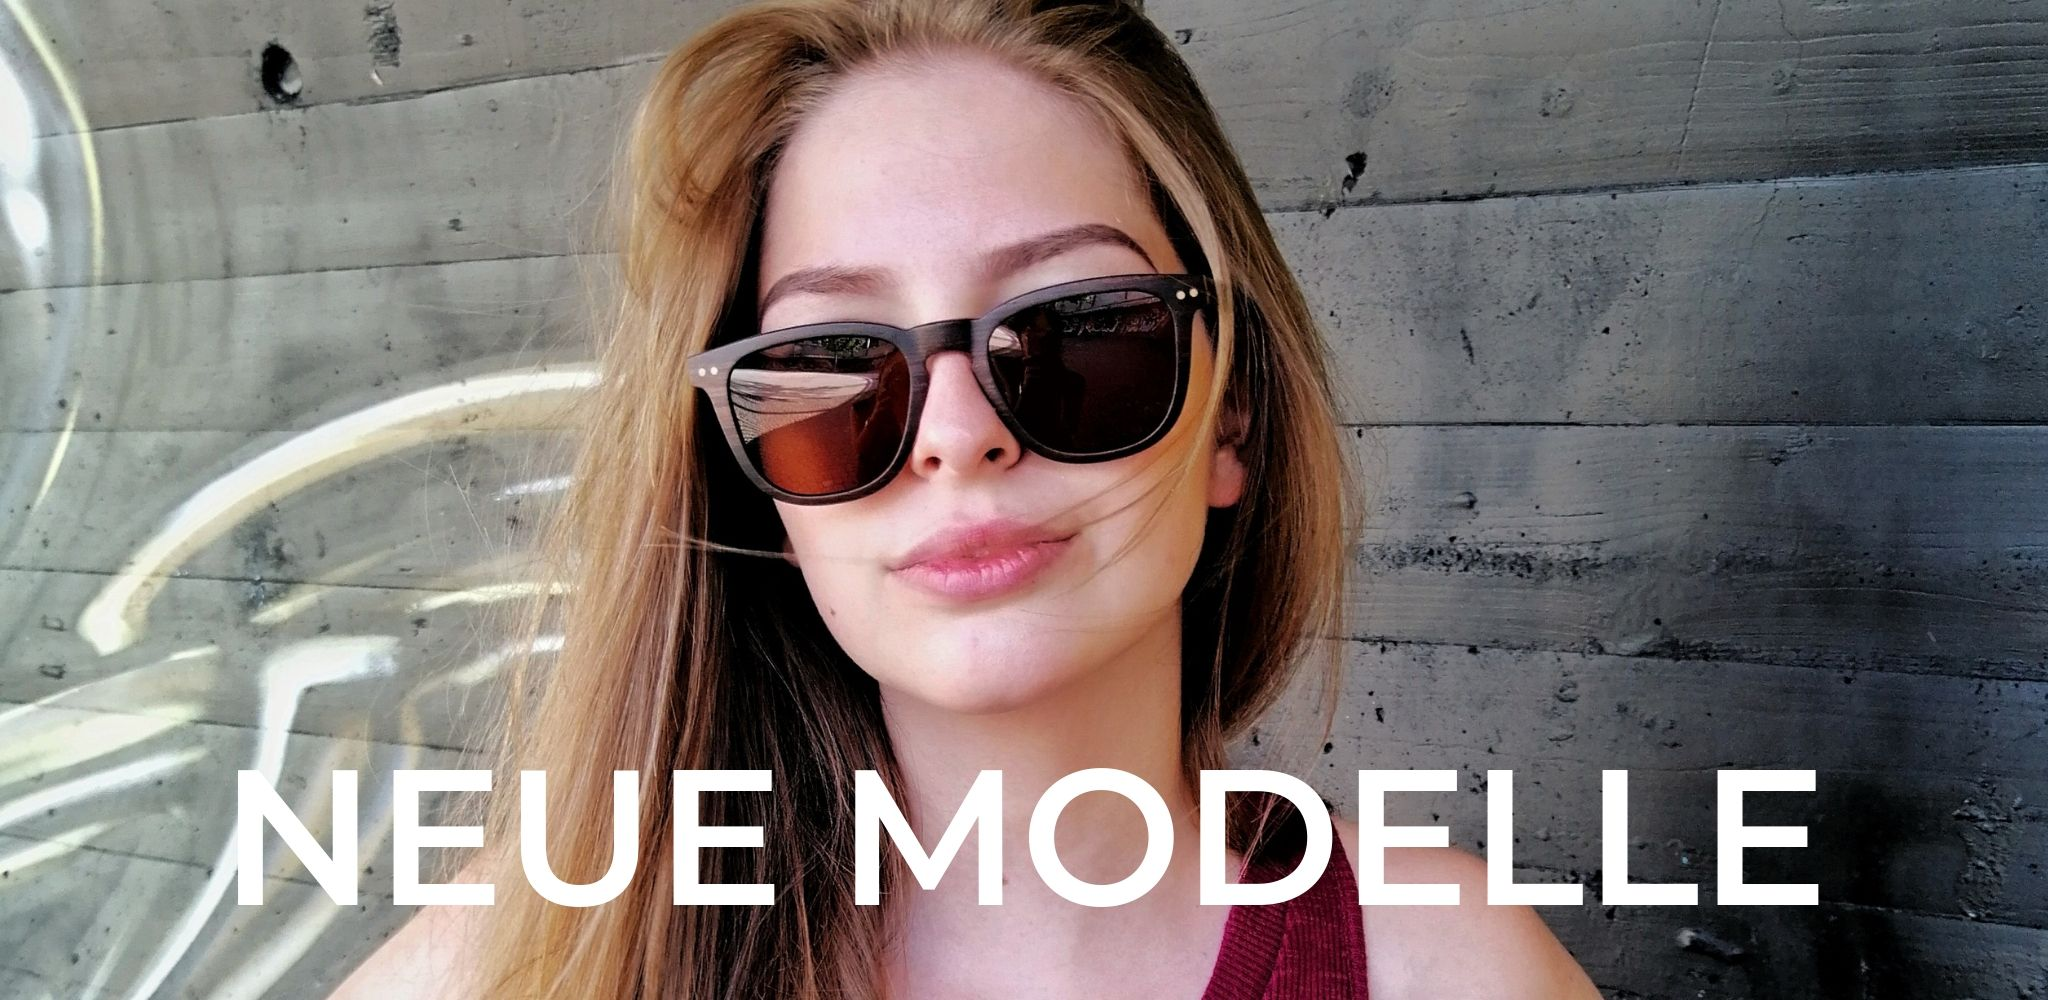 WOODEN SHADE Neue Holz Sonnenbrillen Modelle Damen Herren Wood Sunglasses Men Women 1